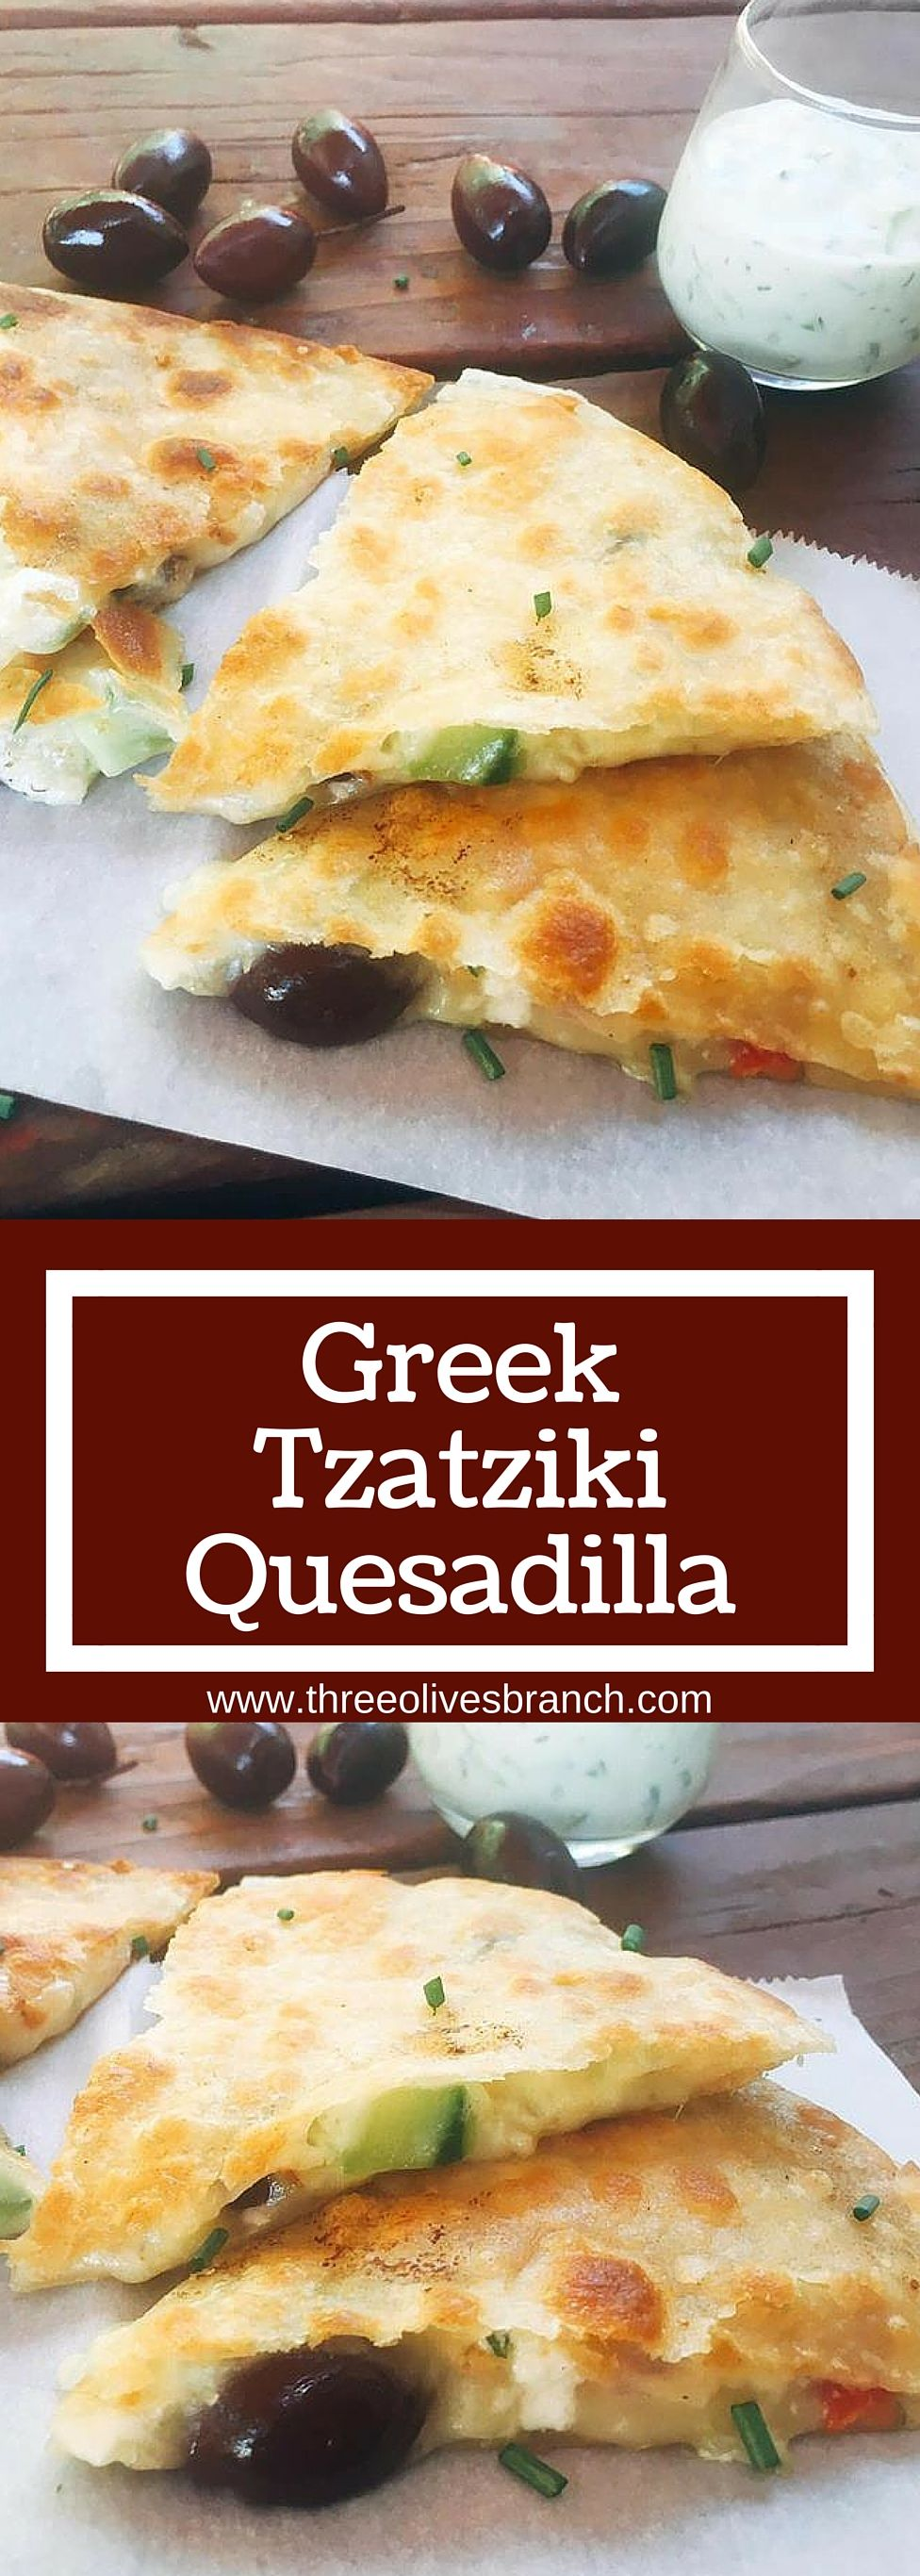 Greek Tzatziki Quesadilla - Three Olives Branch